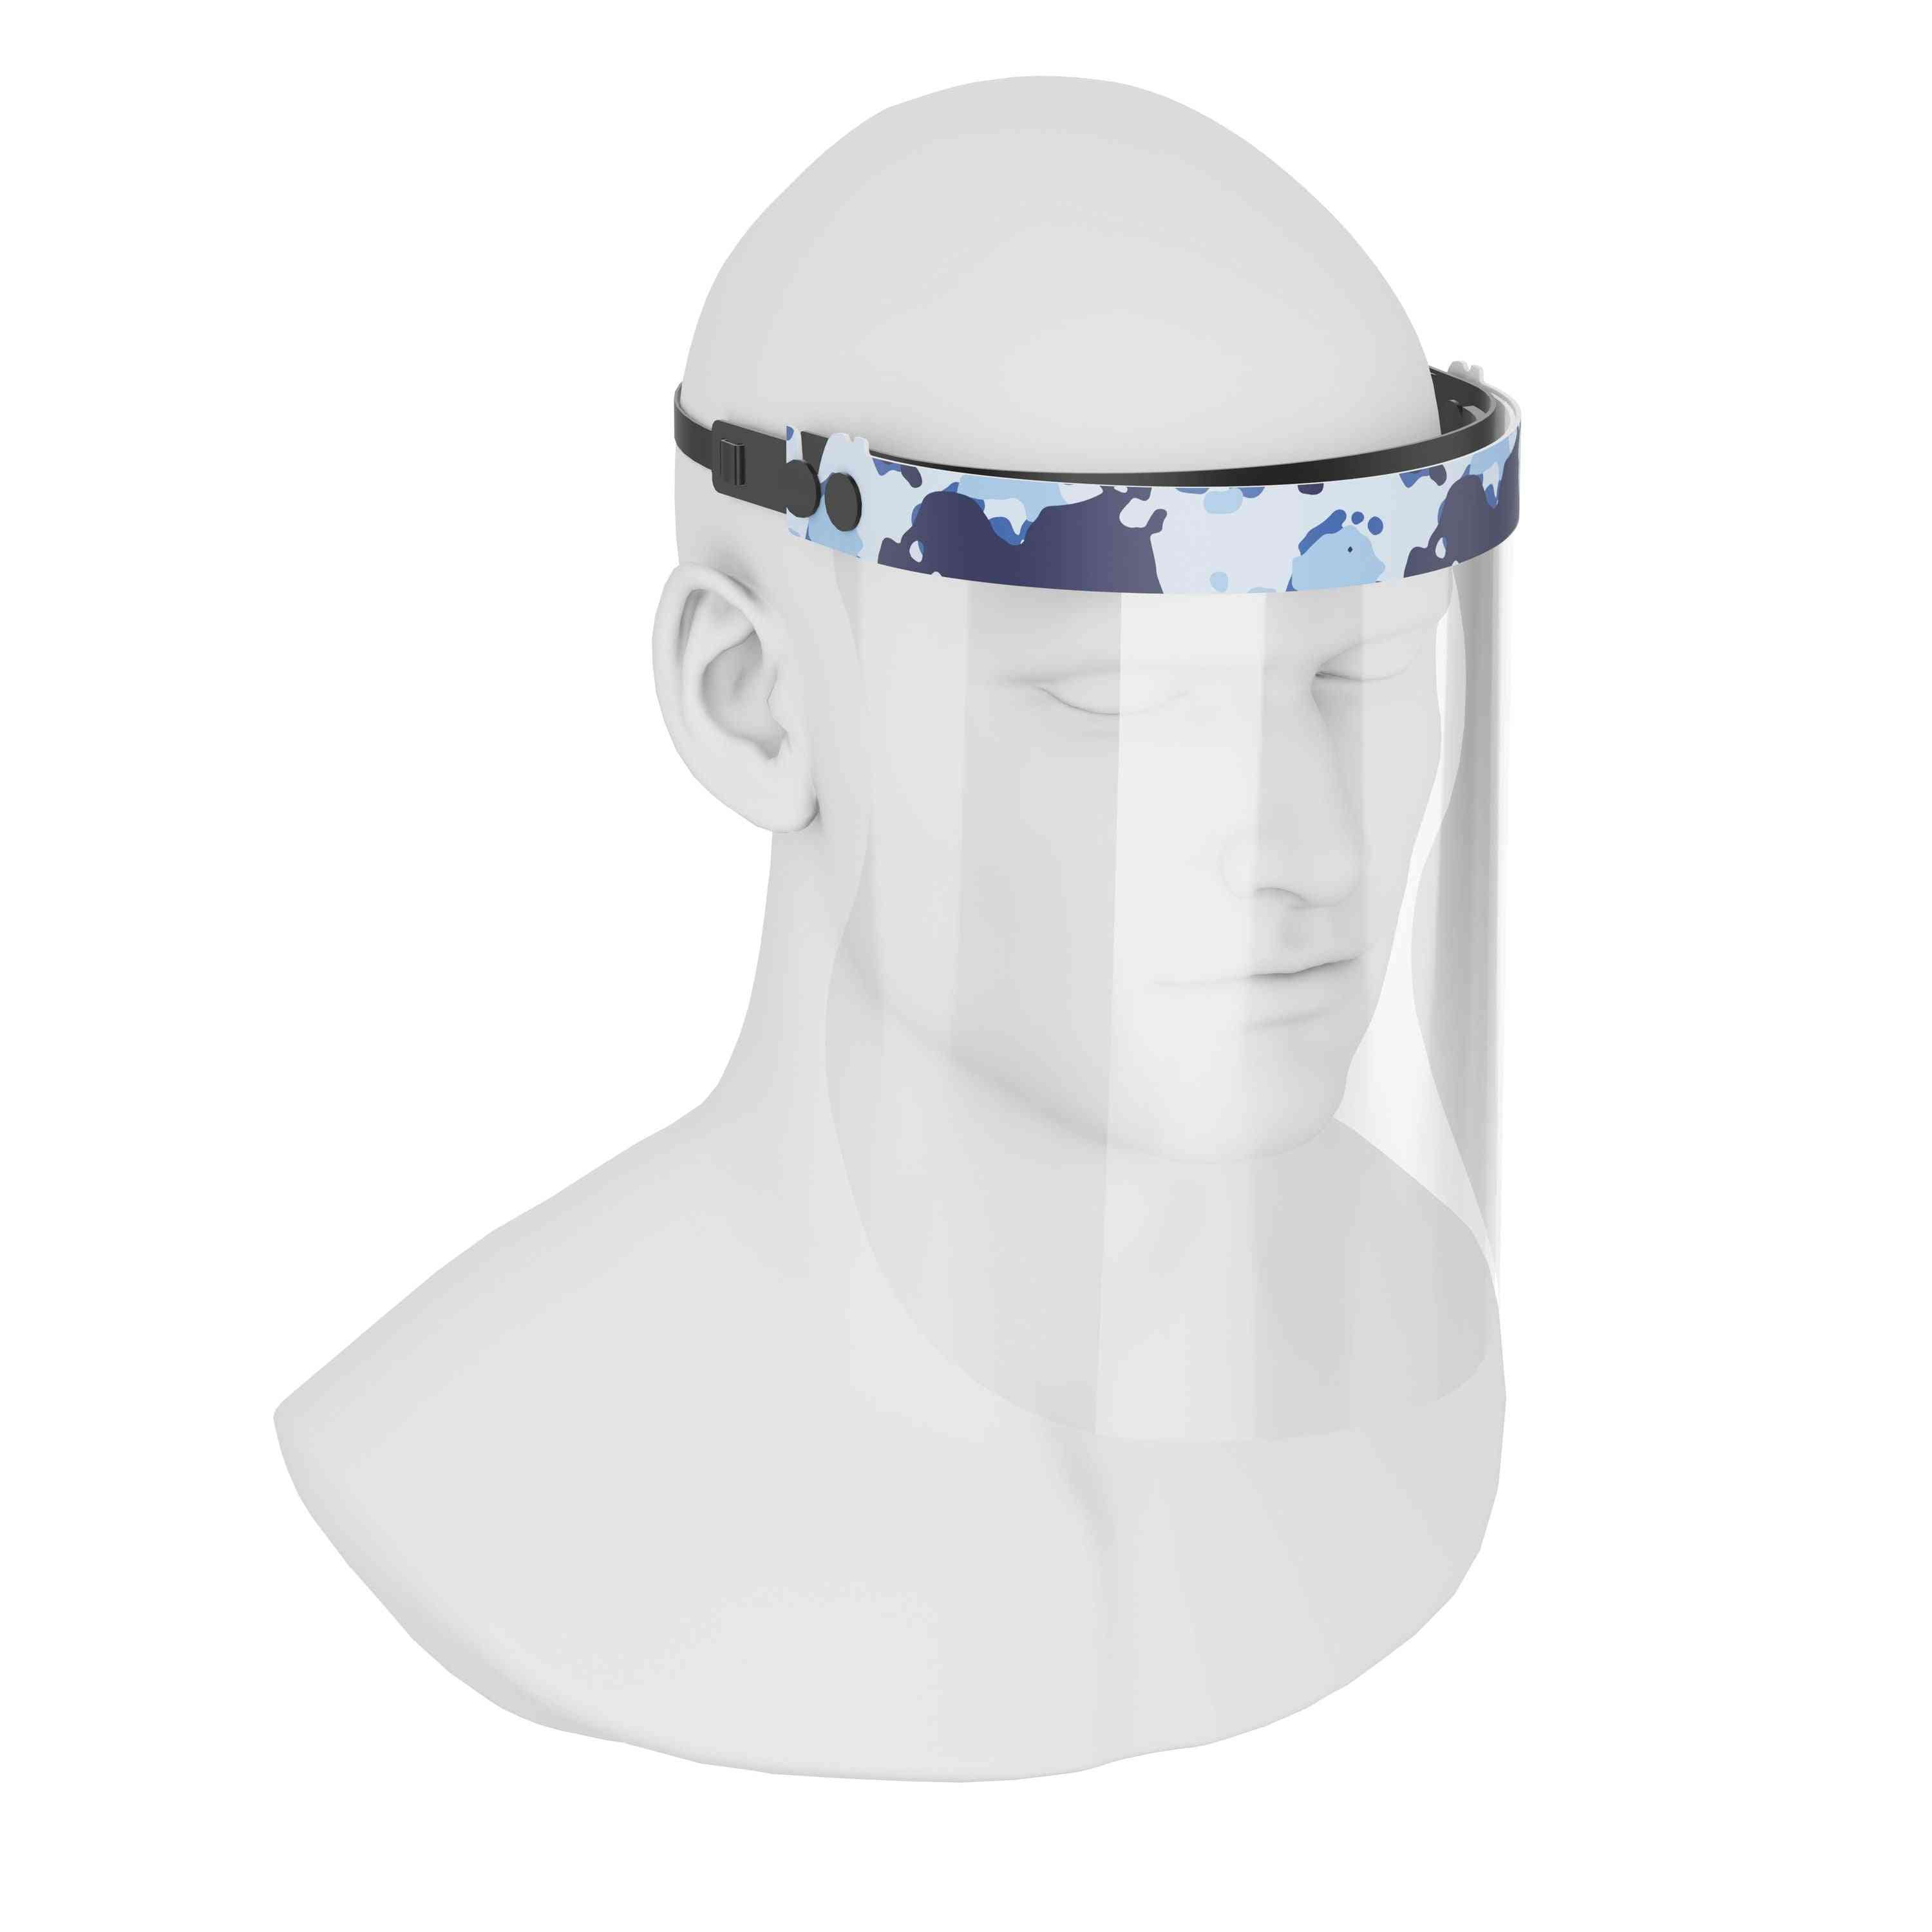 Isolay Face Shield Air Camouflage